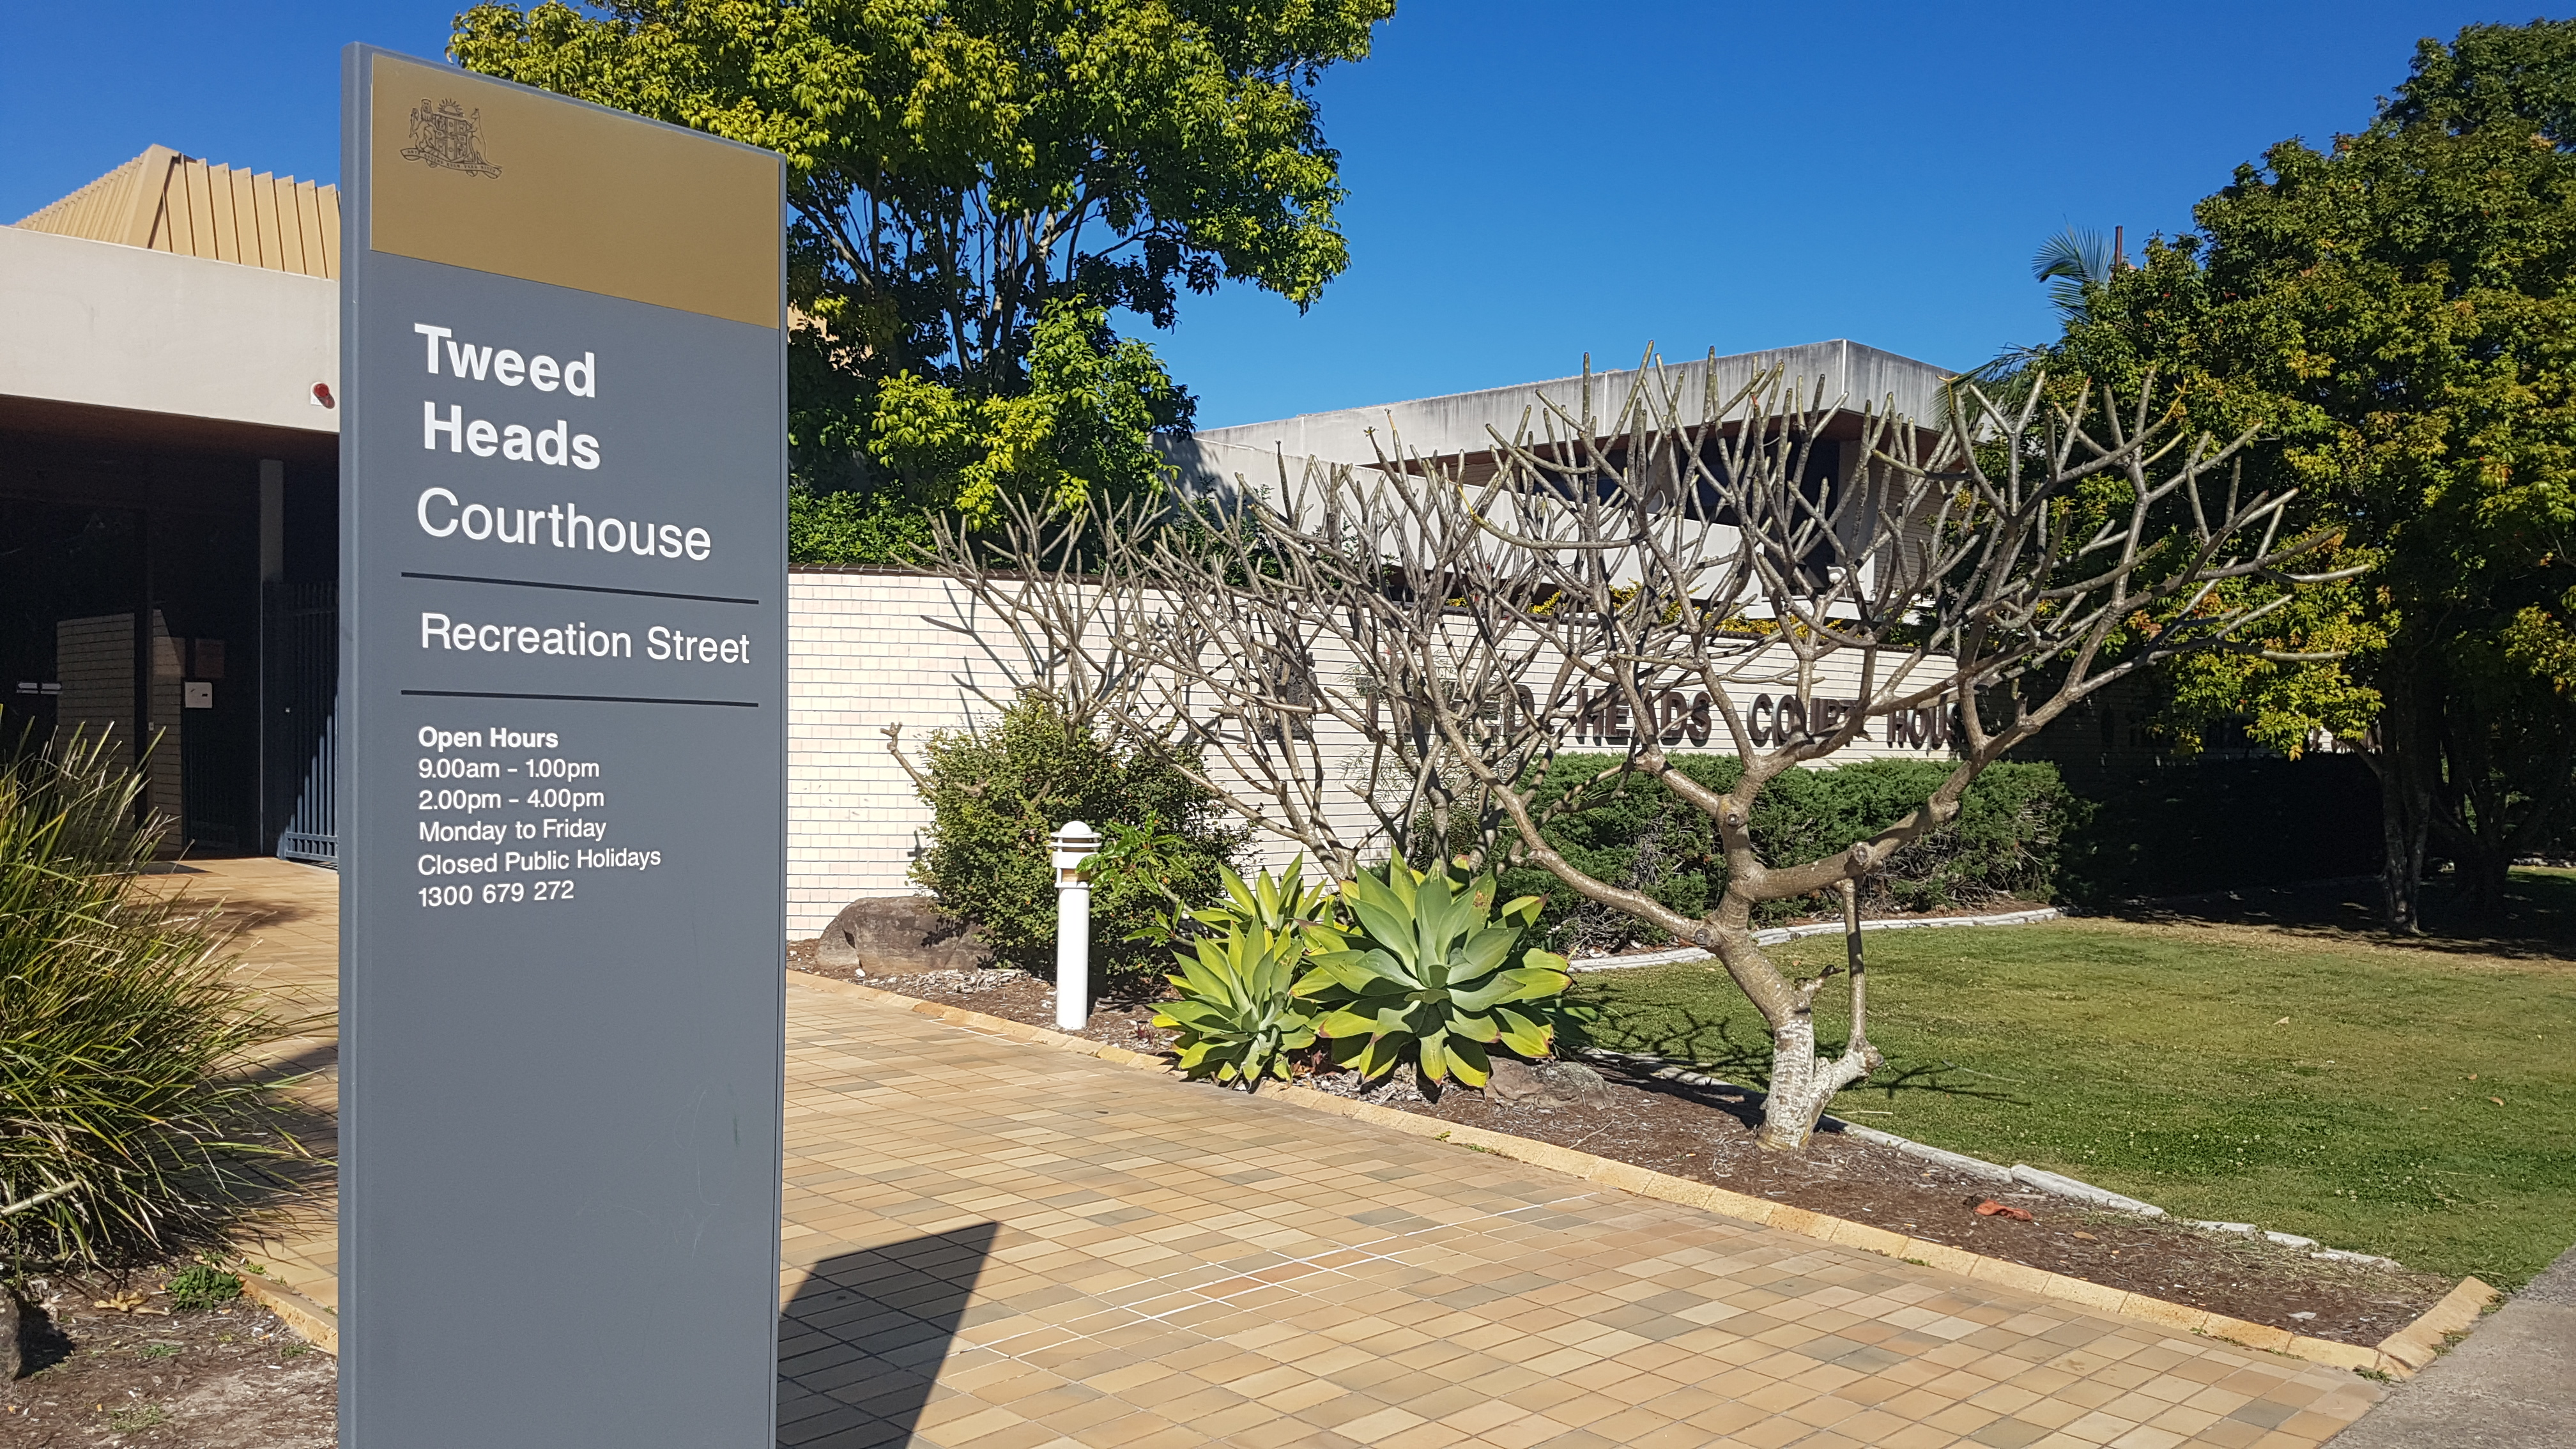 Tweed Heads Court House